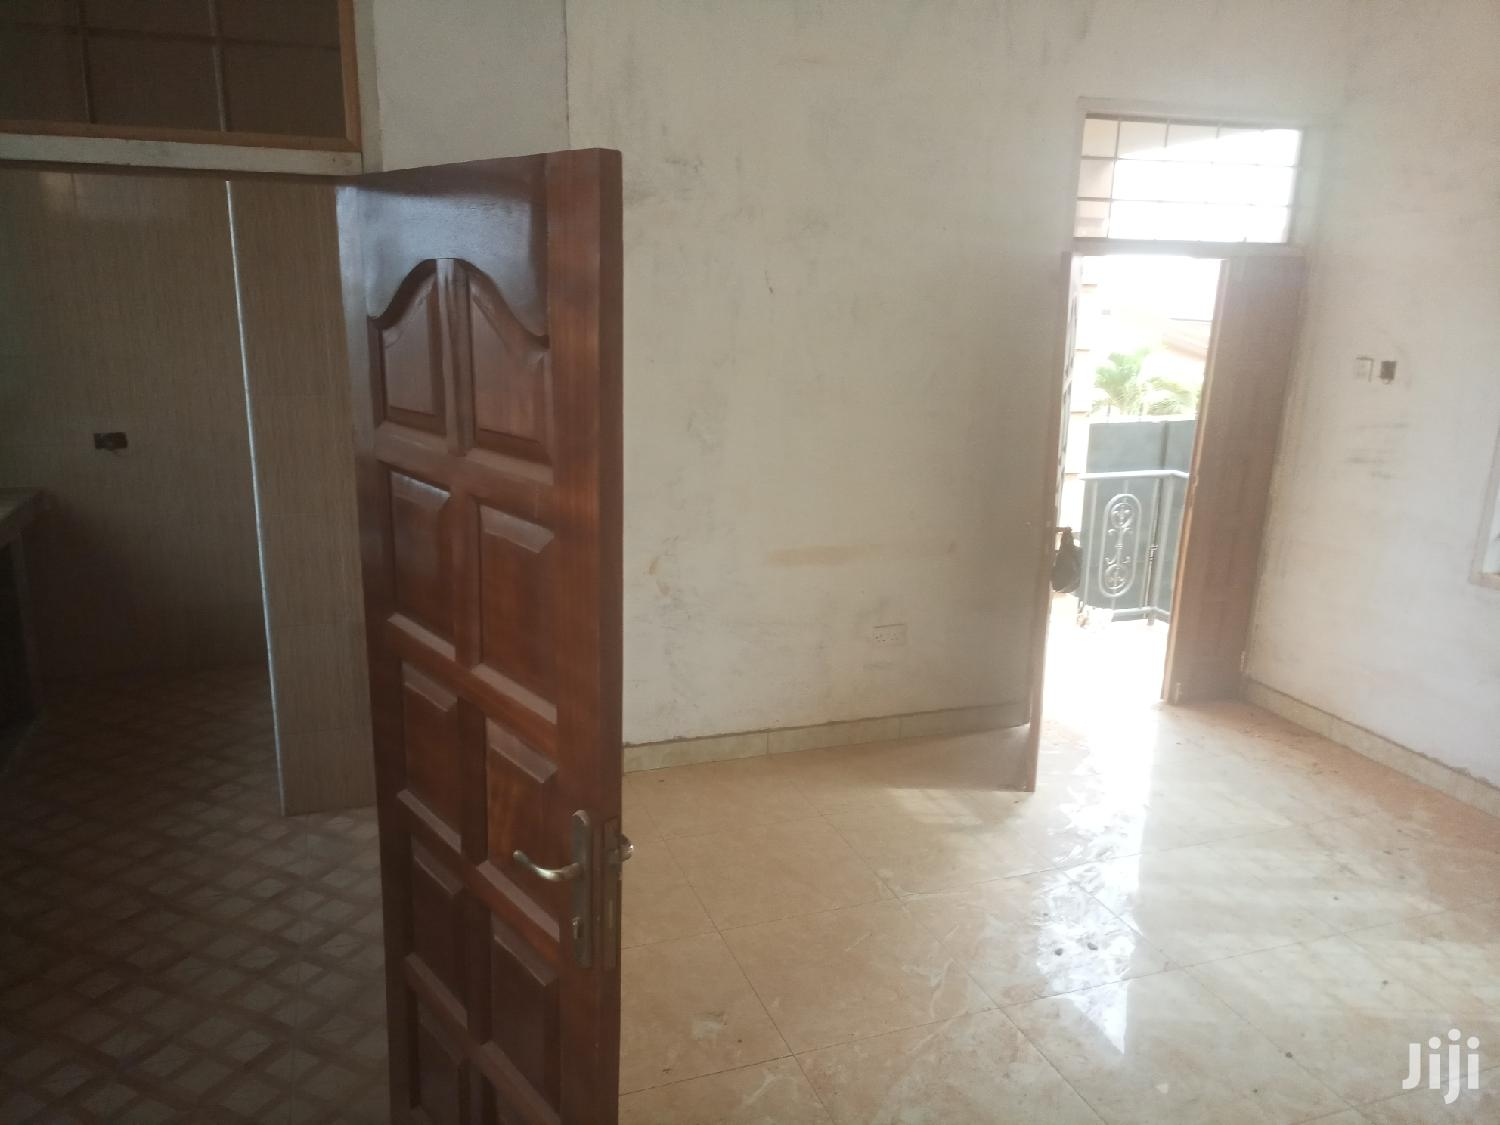 New 2 Bedroom Apt Rent Kwabenya Comet | Houses & Apartments For Rent for sale in Accra Metropolitan, Greater Accra, Ghana